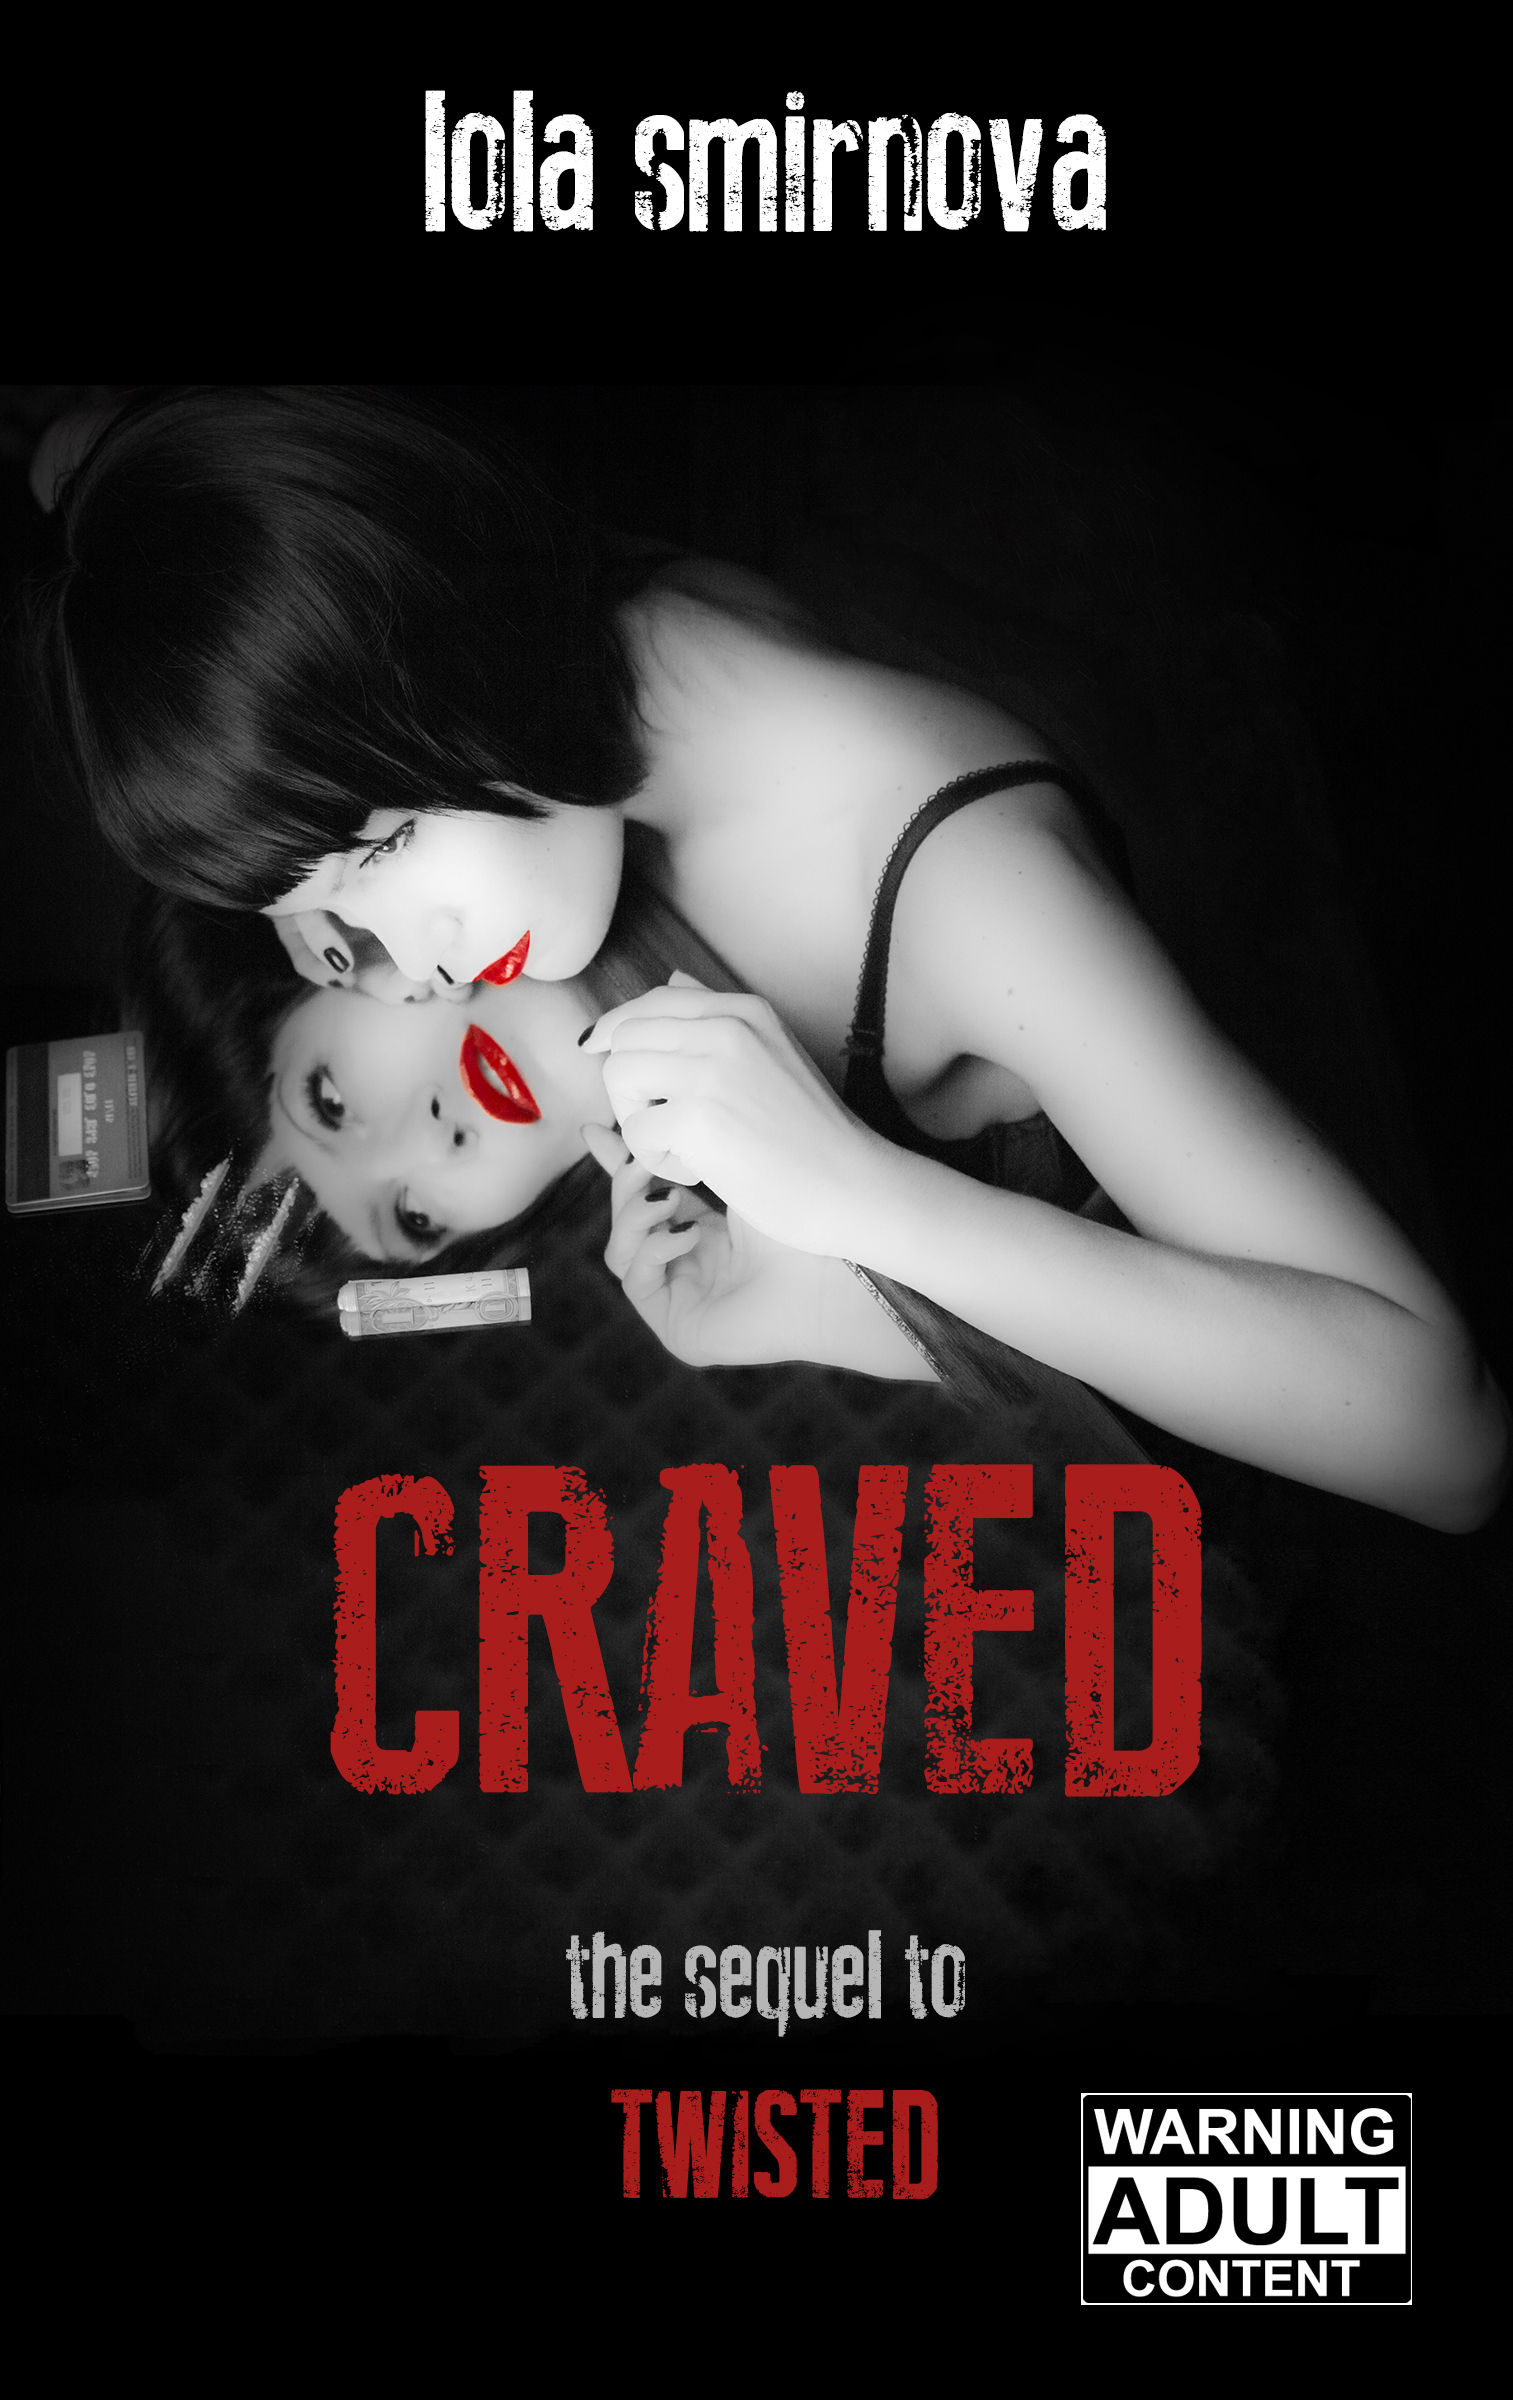 Craved